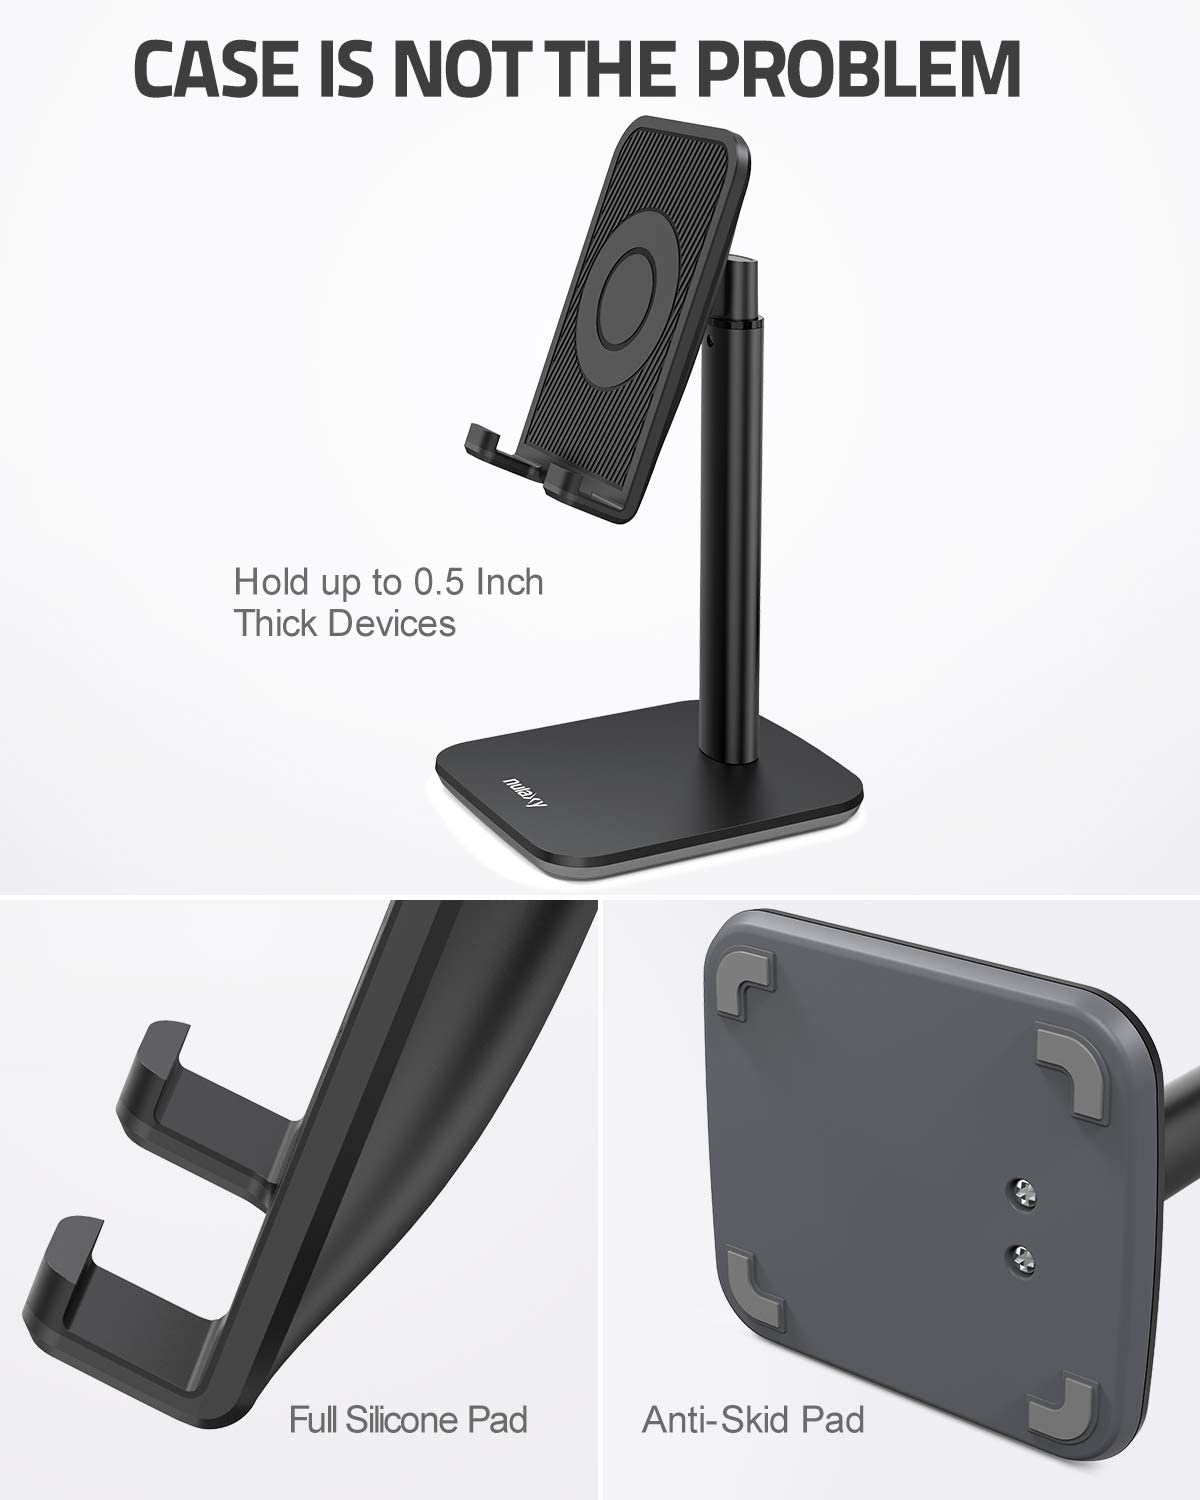 All Smartphones Dock Upgraded Height Angle Adjustable Cell Phone Stand Nulaxy Phone Stand Desk Phone Holder Compatible with iPhone Xs Xr 8 X 7 6 6s Plus SE 5 5s 5c Cradle Black